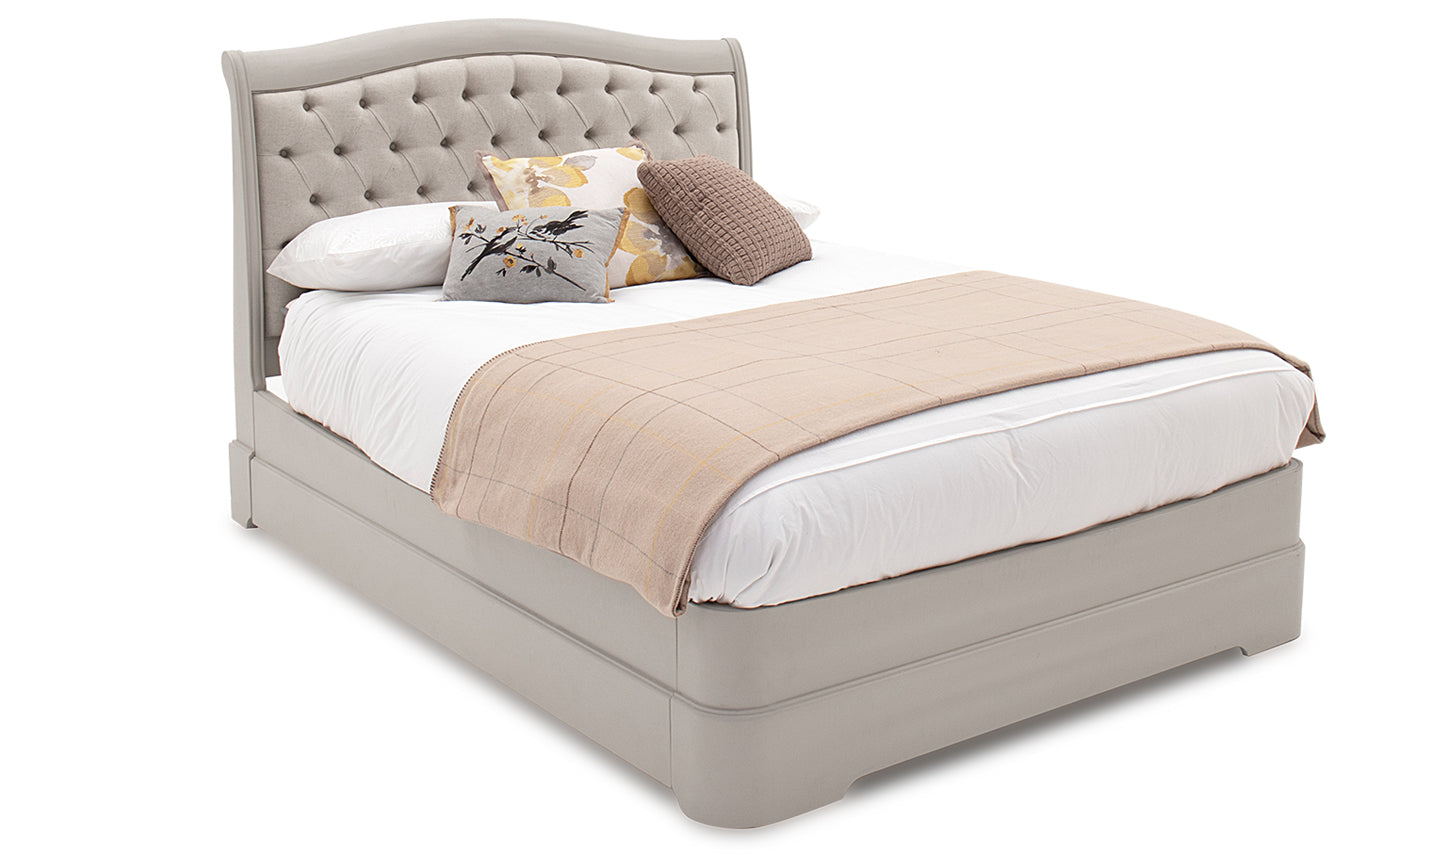 Mabel Bed Upholstered Headboard - 5'